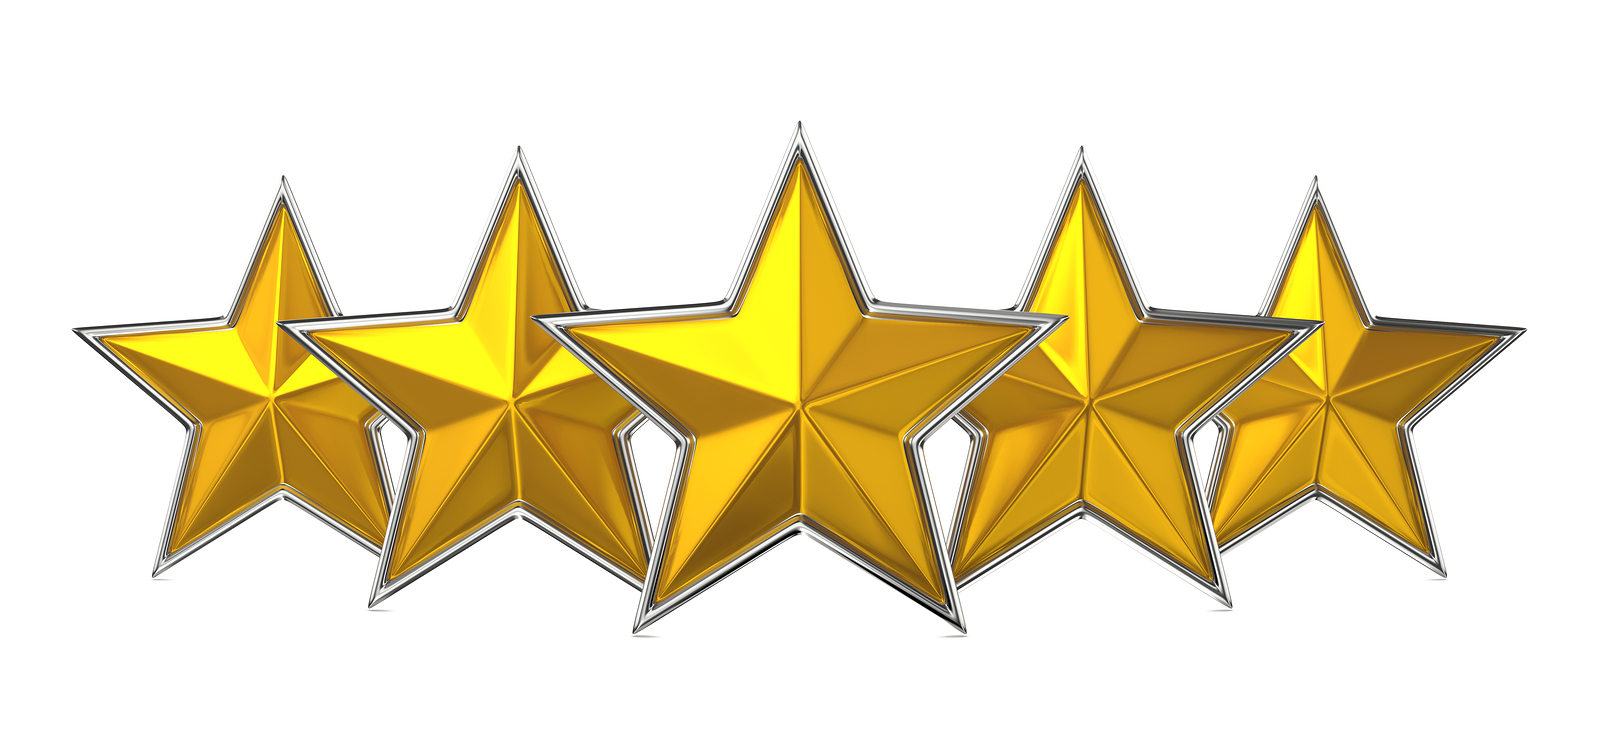 Free 5 Star Rating Cliparts, Download Free Clip Art, Free Clip Art.